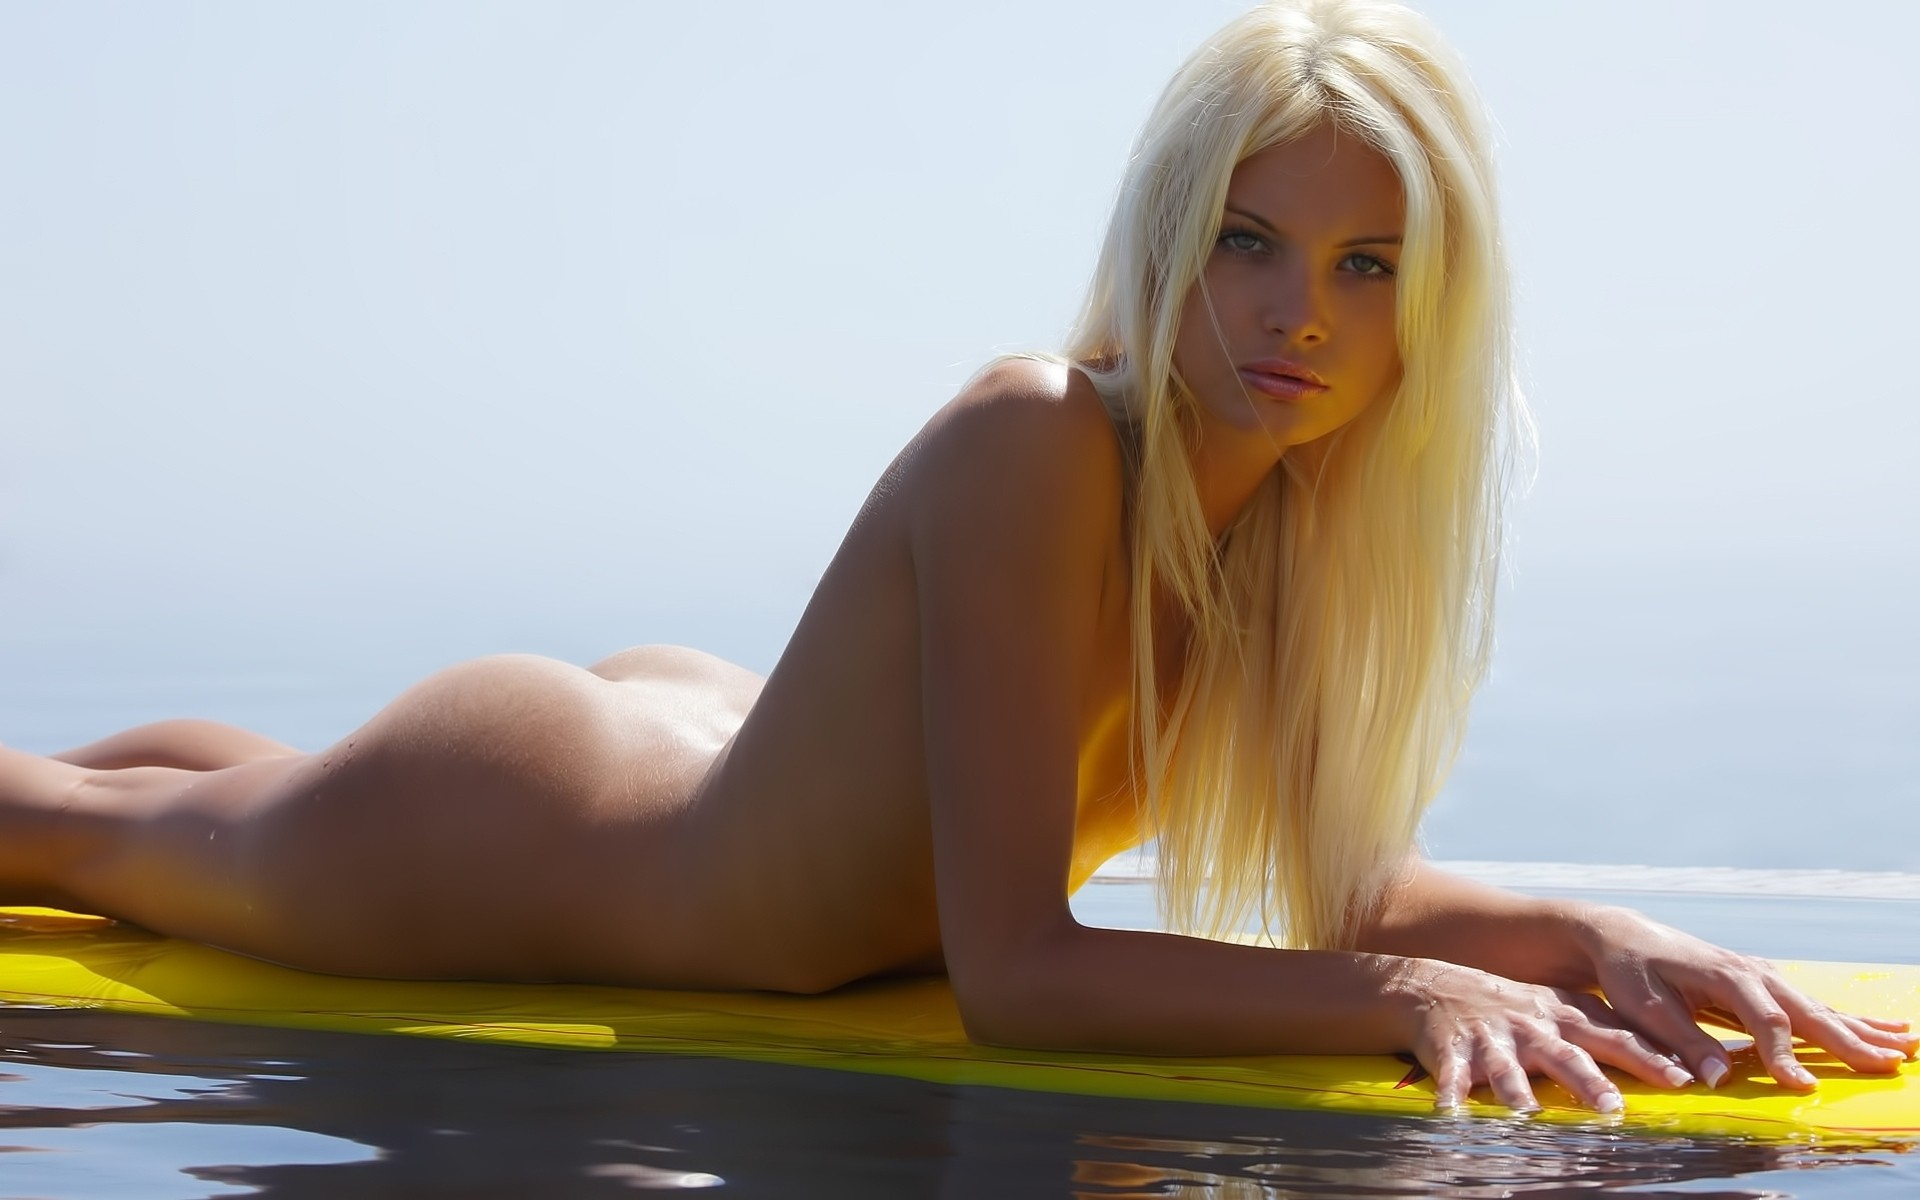 Naked sexy blondie — pic 3